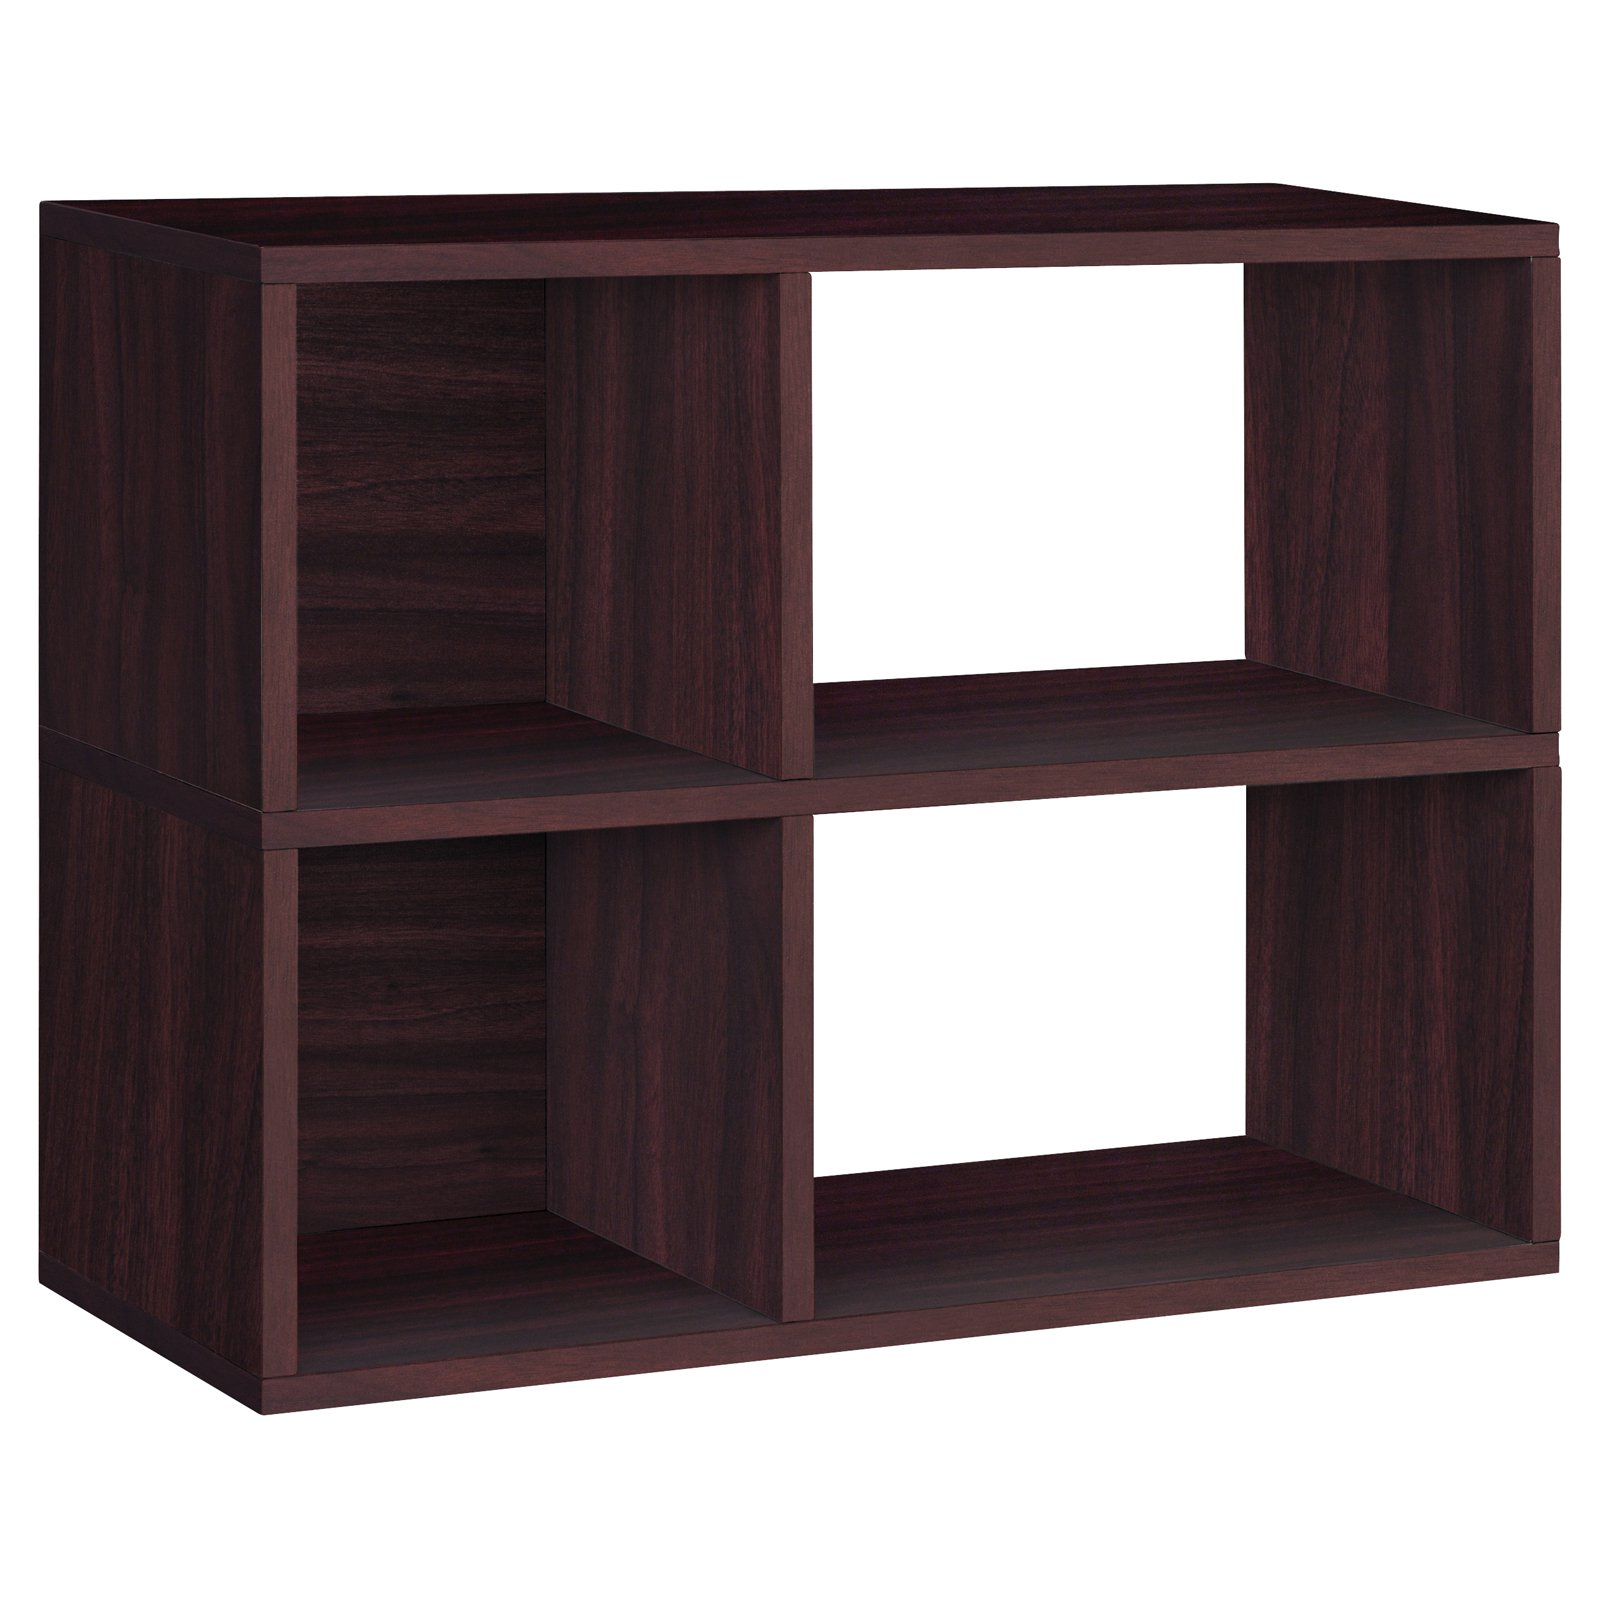 Way Basics Eco 2-Shelf Chelsea Bookcase and Cubby Storage, Espresso